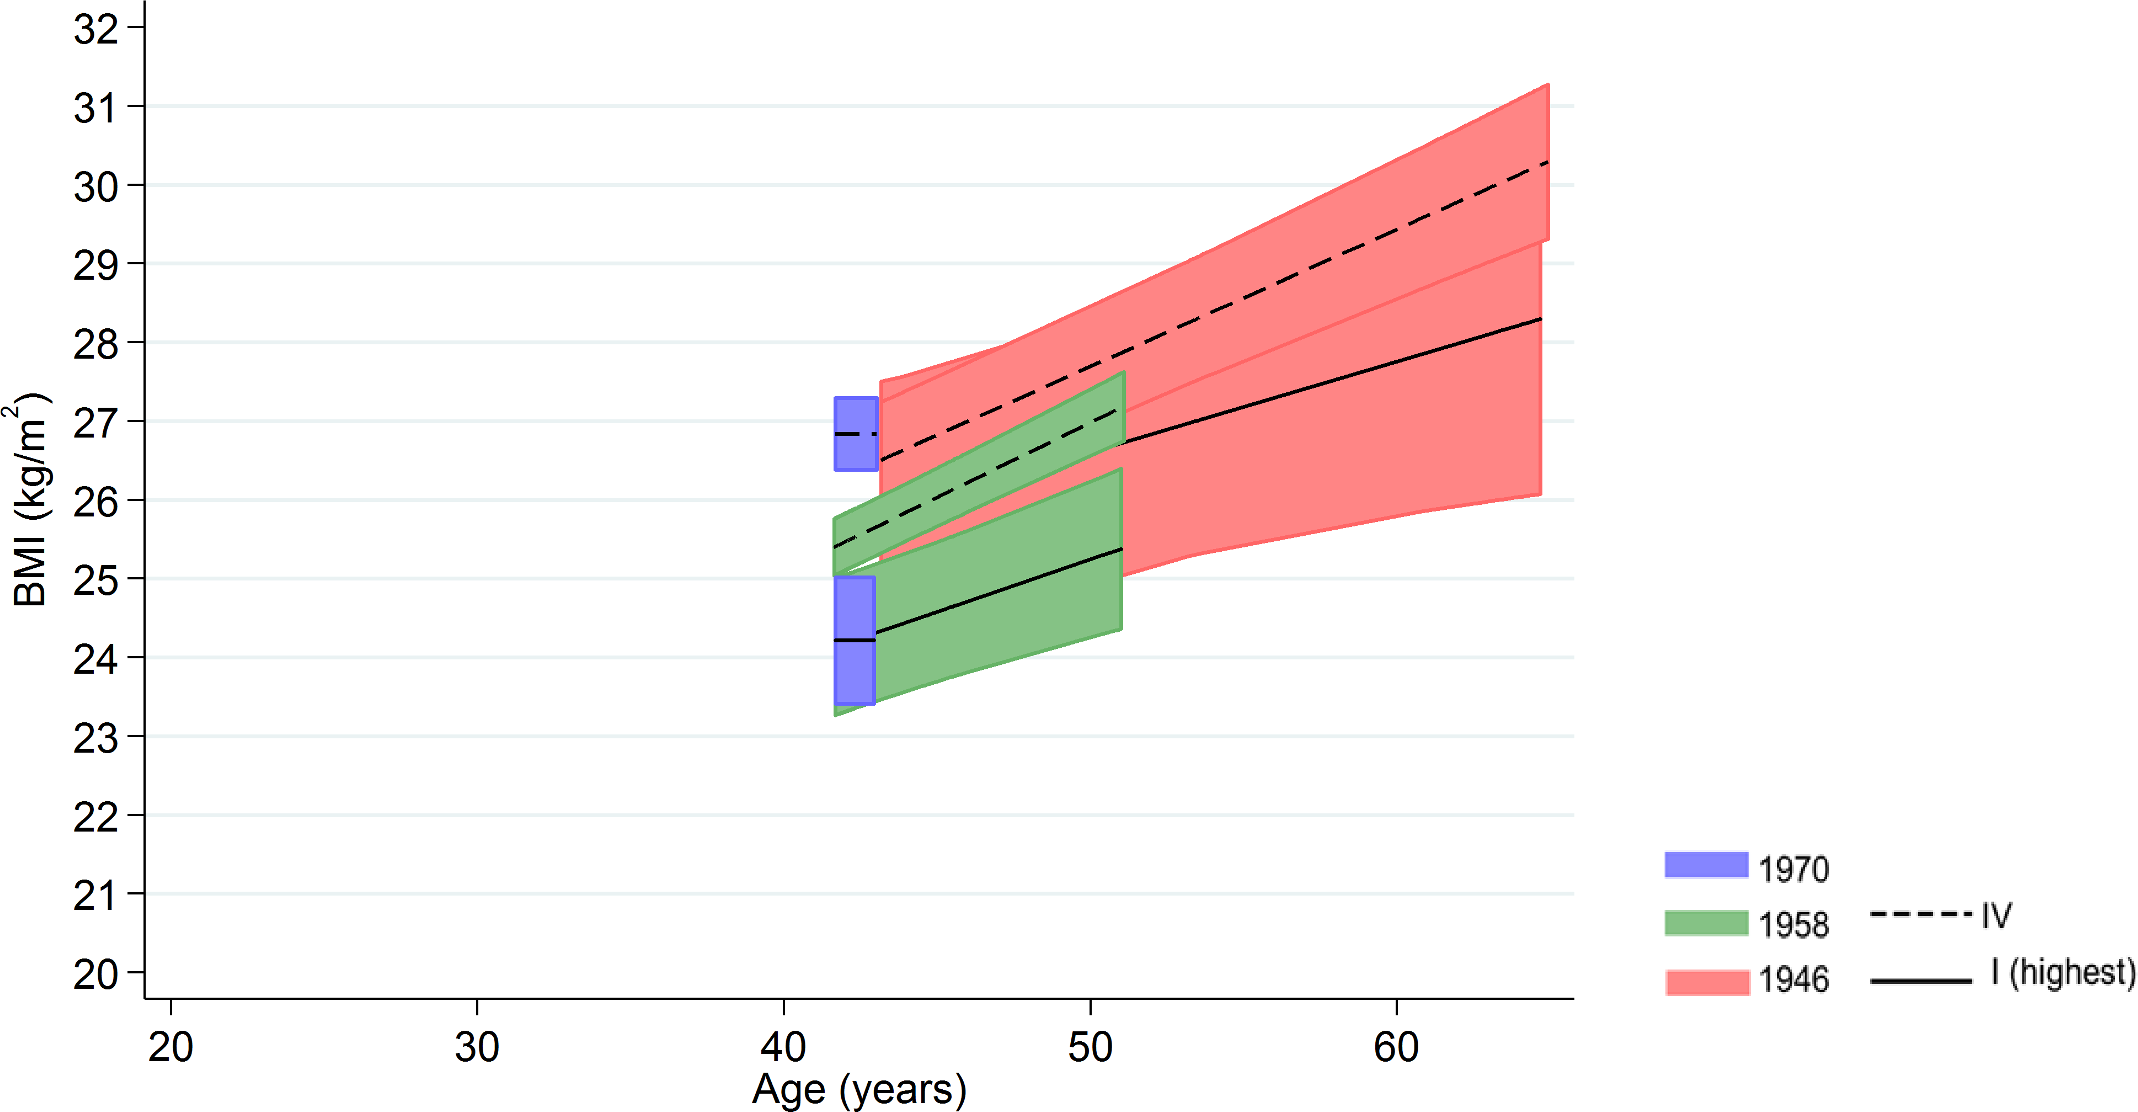 Female BMI across adulthood in relation to own social class (42/43 y) in the 1946 NSHD, 1958 NCDS, and 1970 BCS British birth cohort studies.